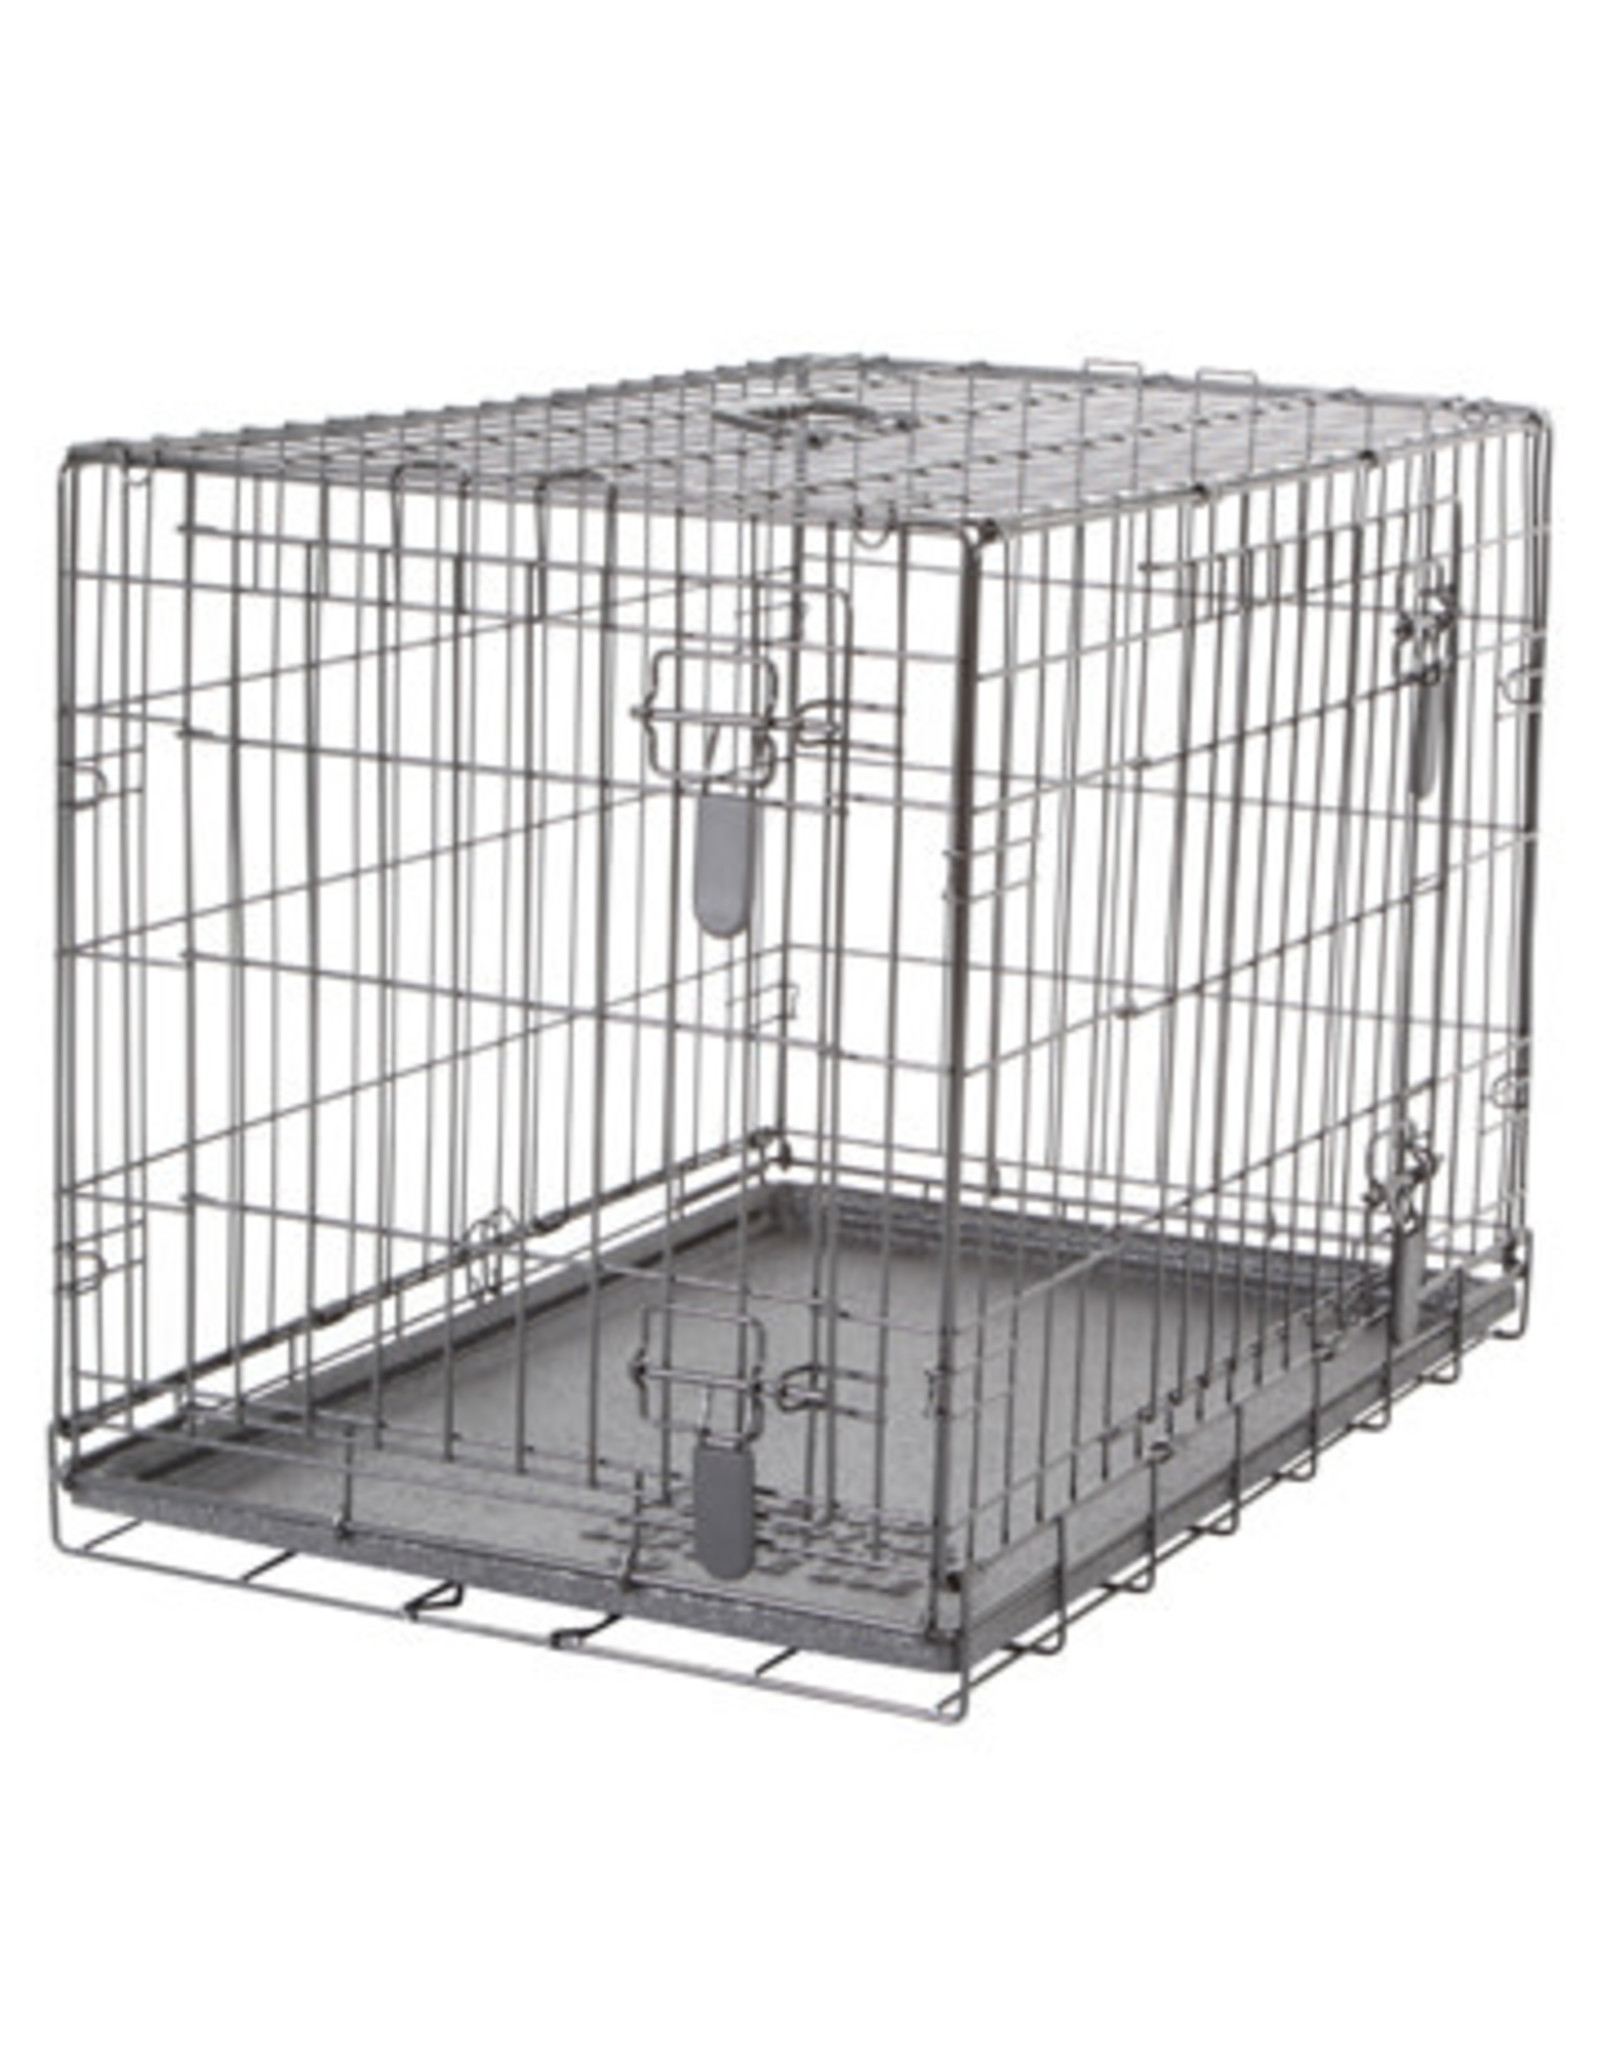 """DogIt Two Door Wire Crates with Divider Medium 77x48x54.5cm (30x19x21.5"""")"""